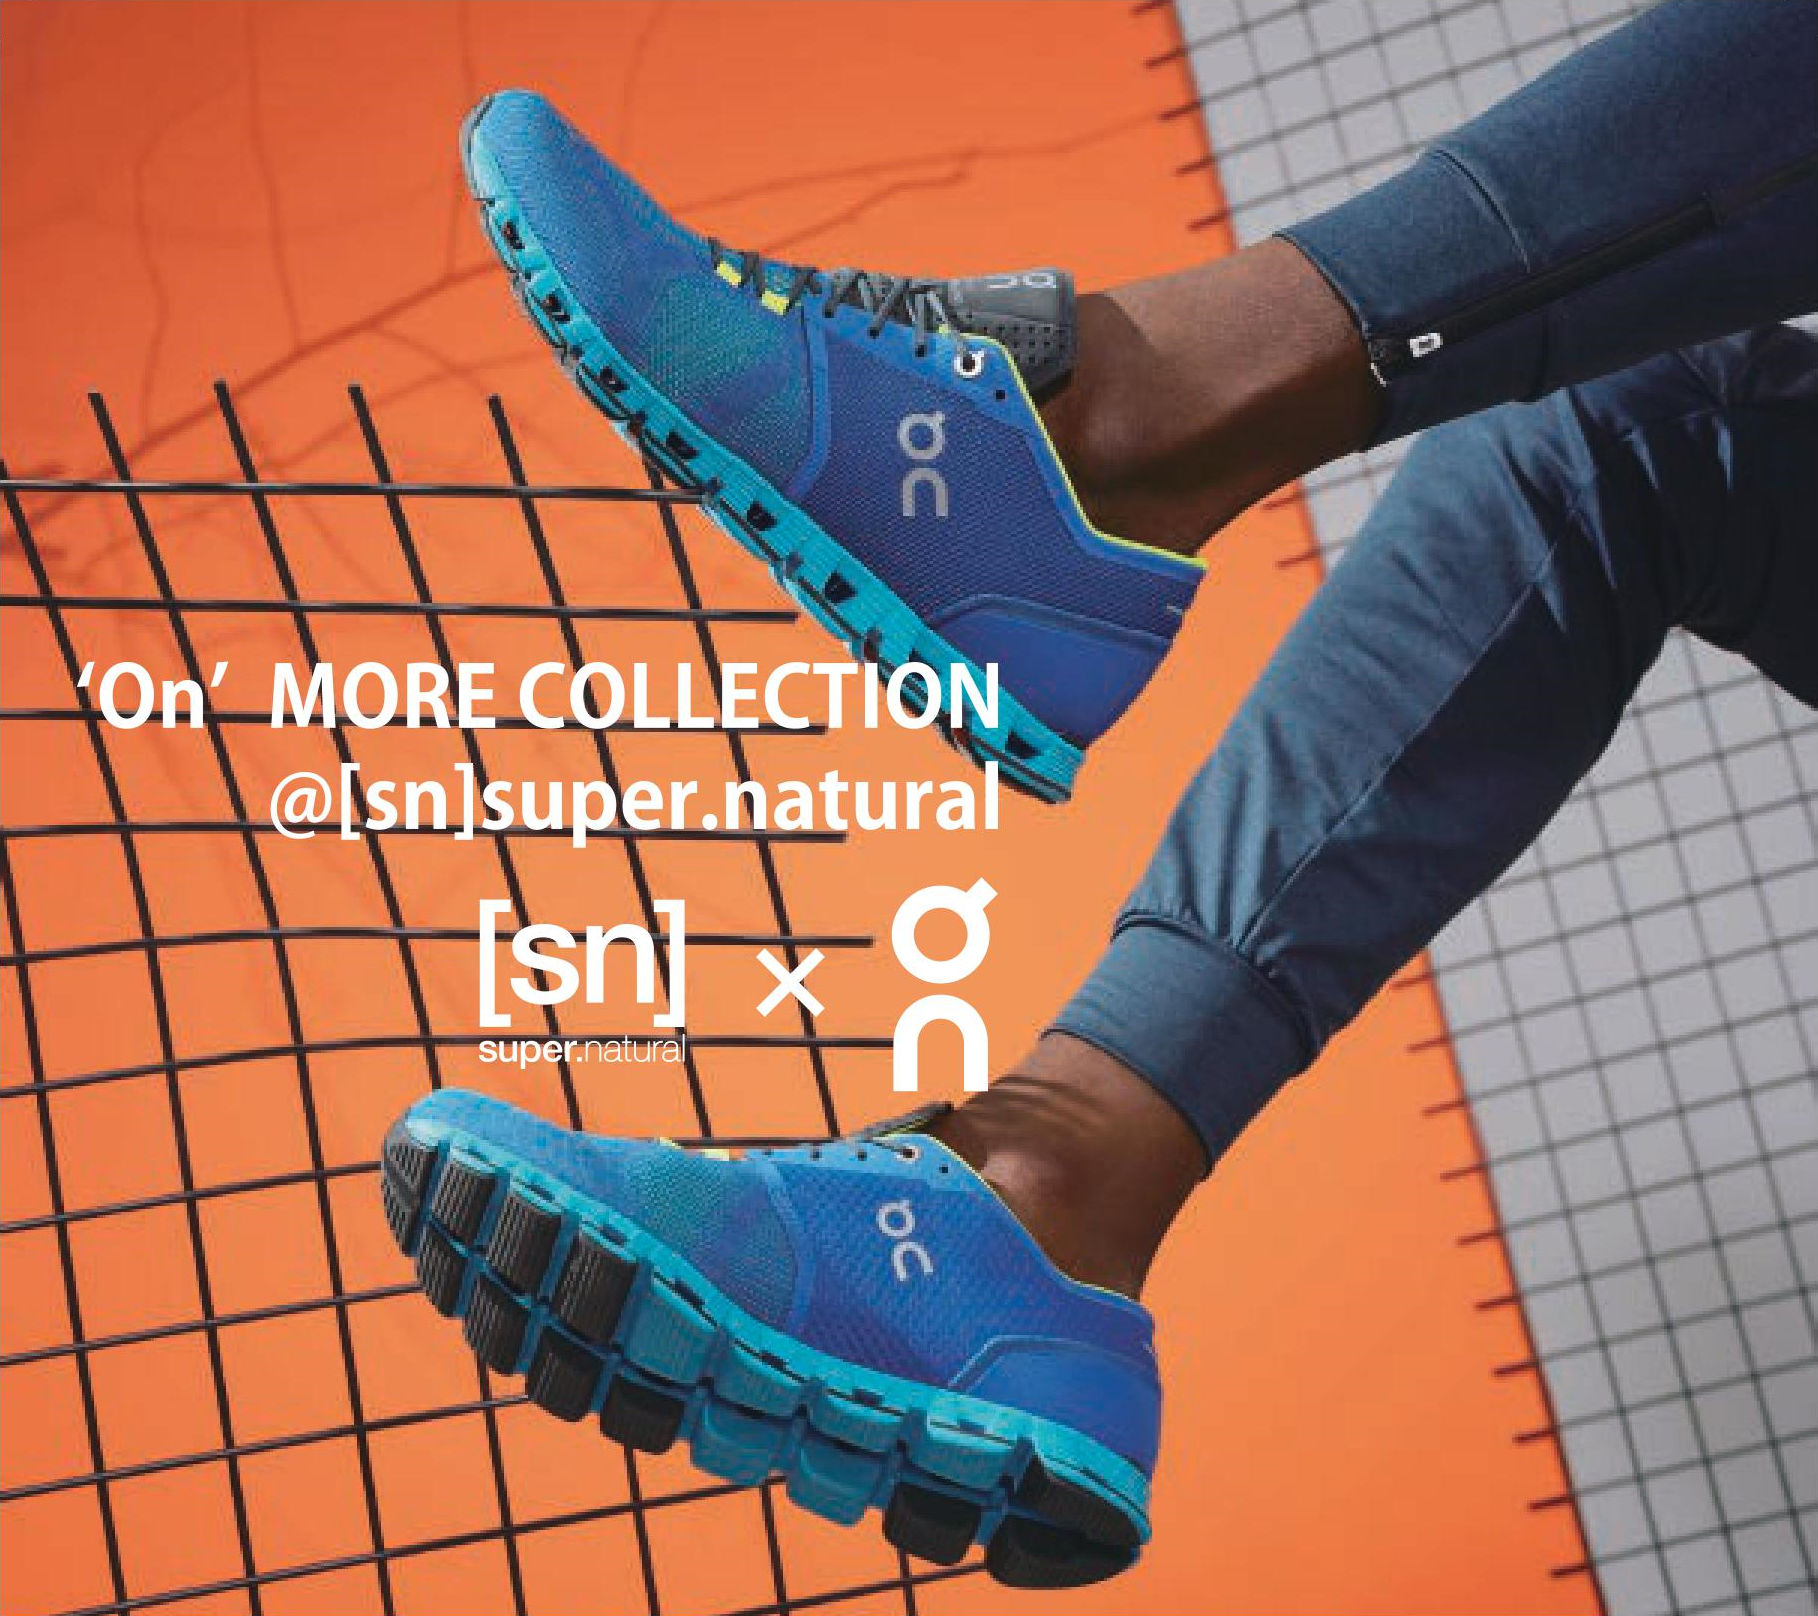 [sn]×<on> MORE COLLECTION 開催 8.1-14